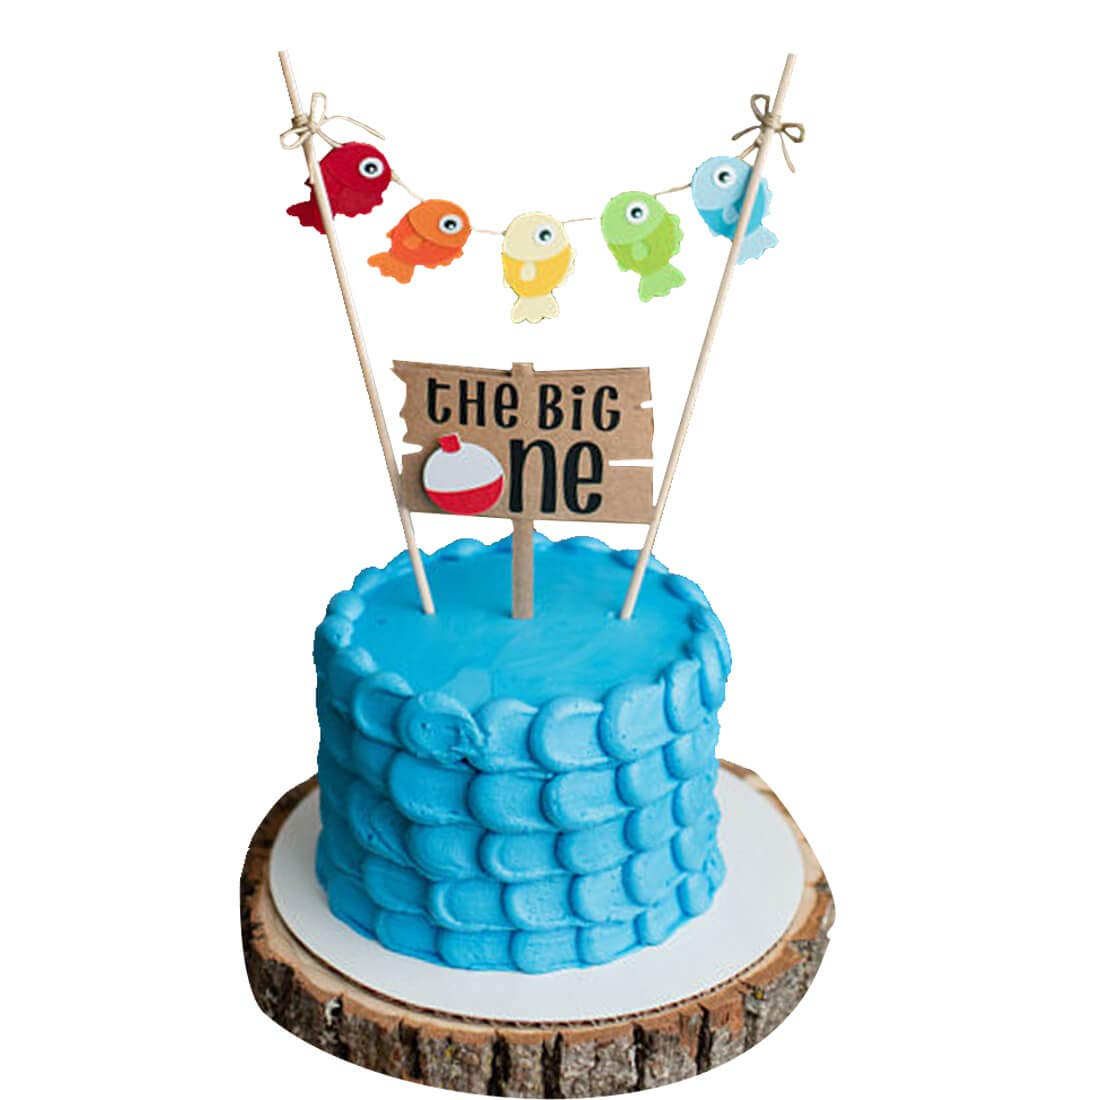 The Big One Cake Topper